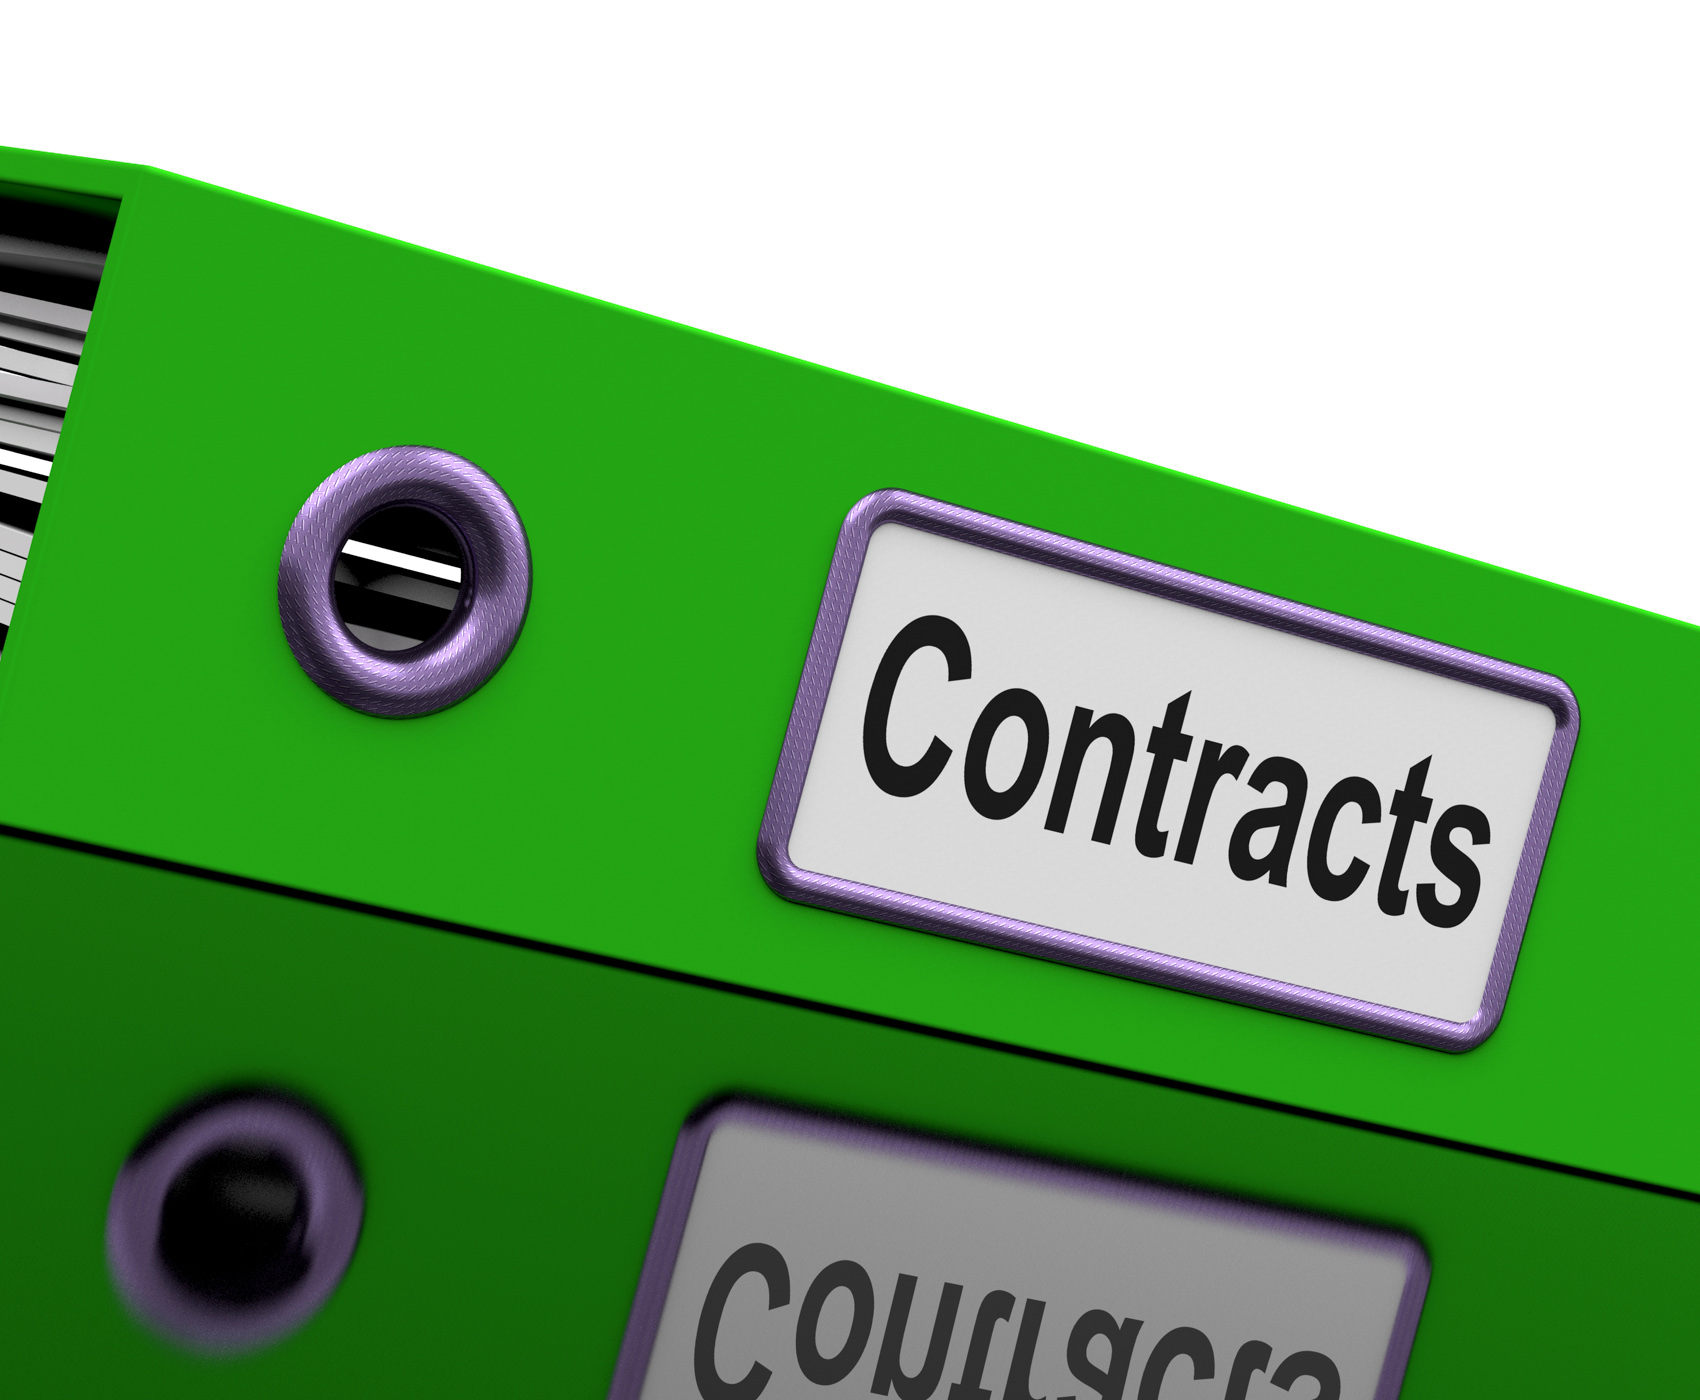 Contract file shows legal business agreements photo